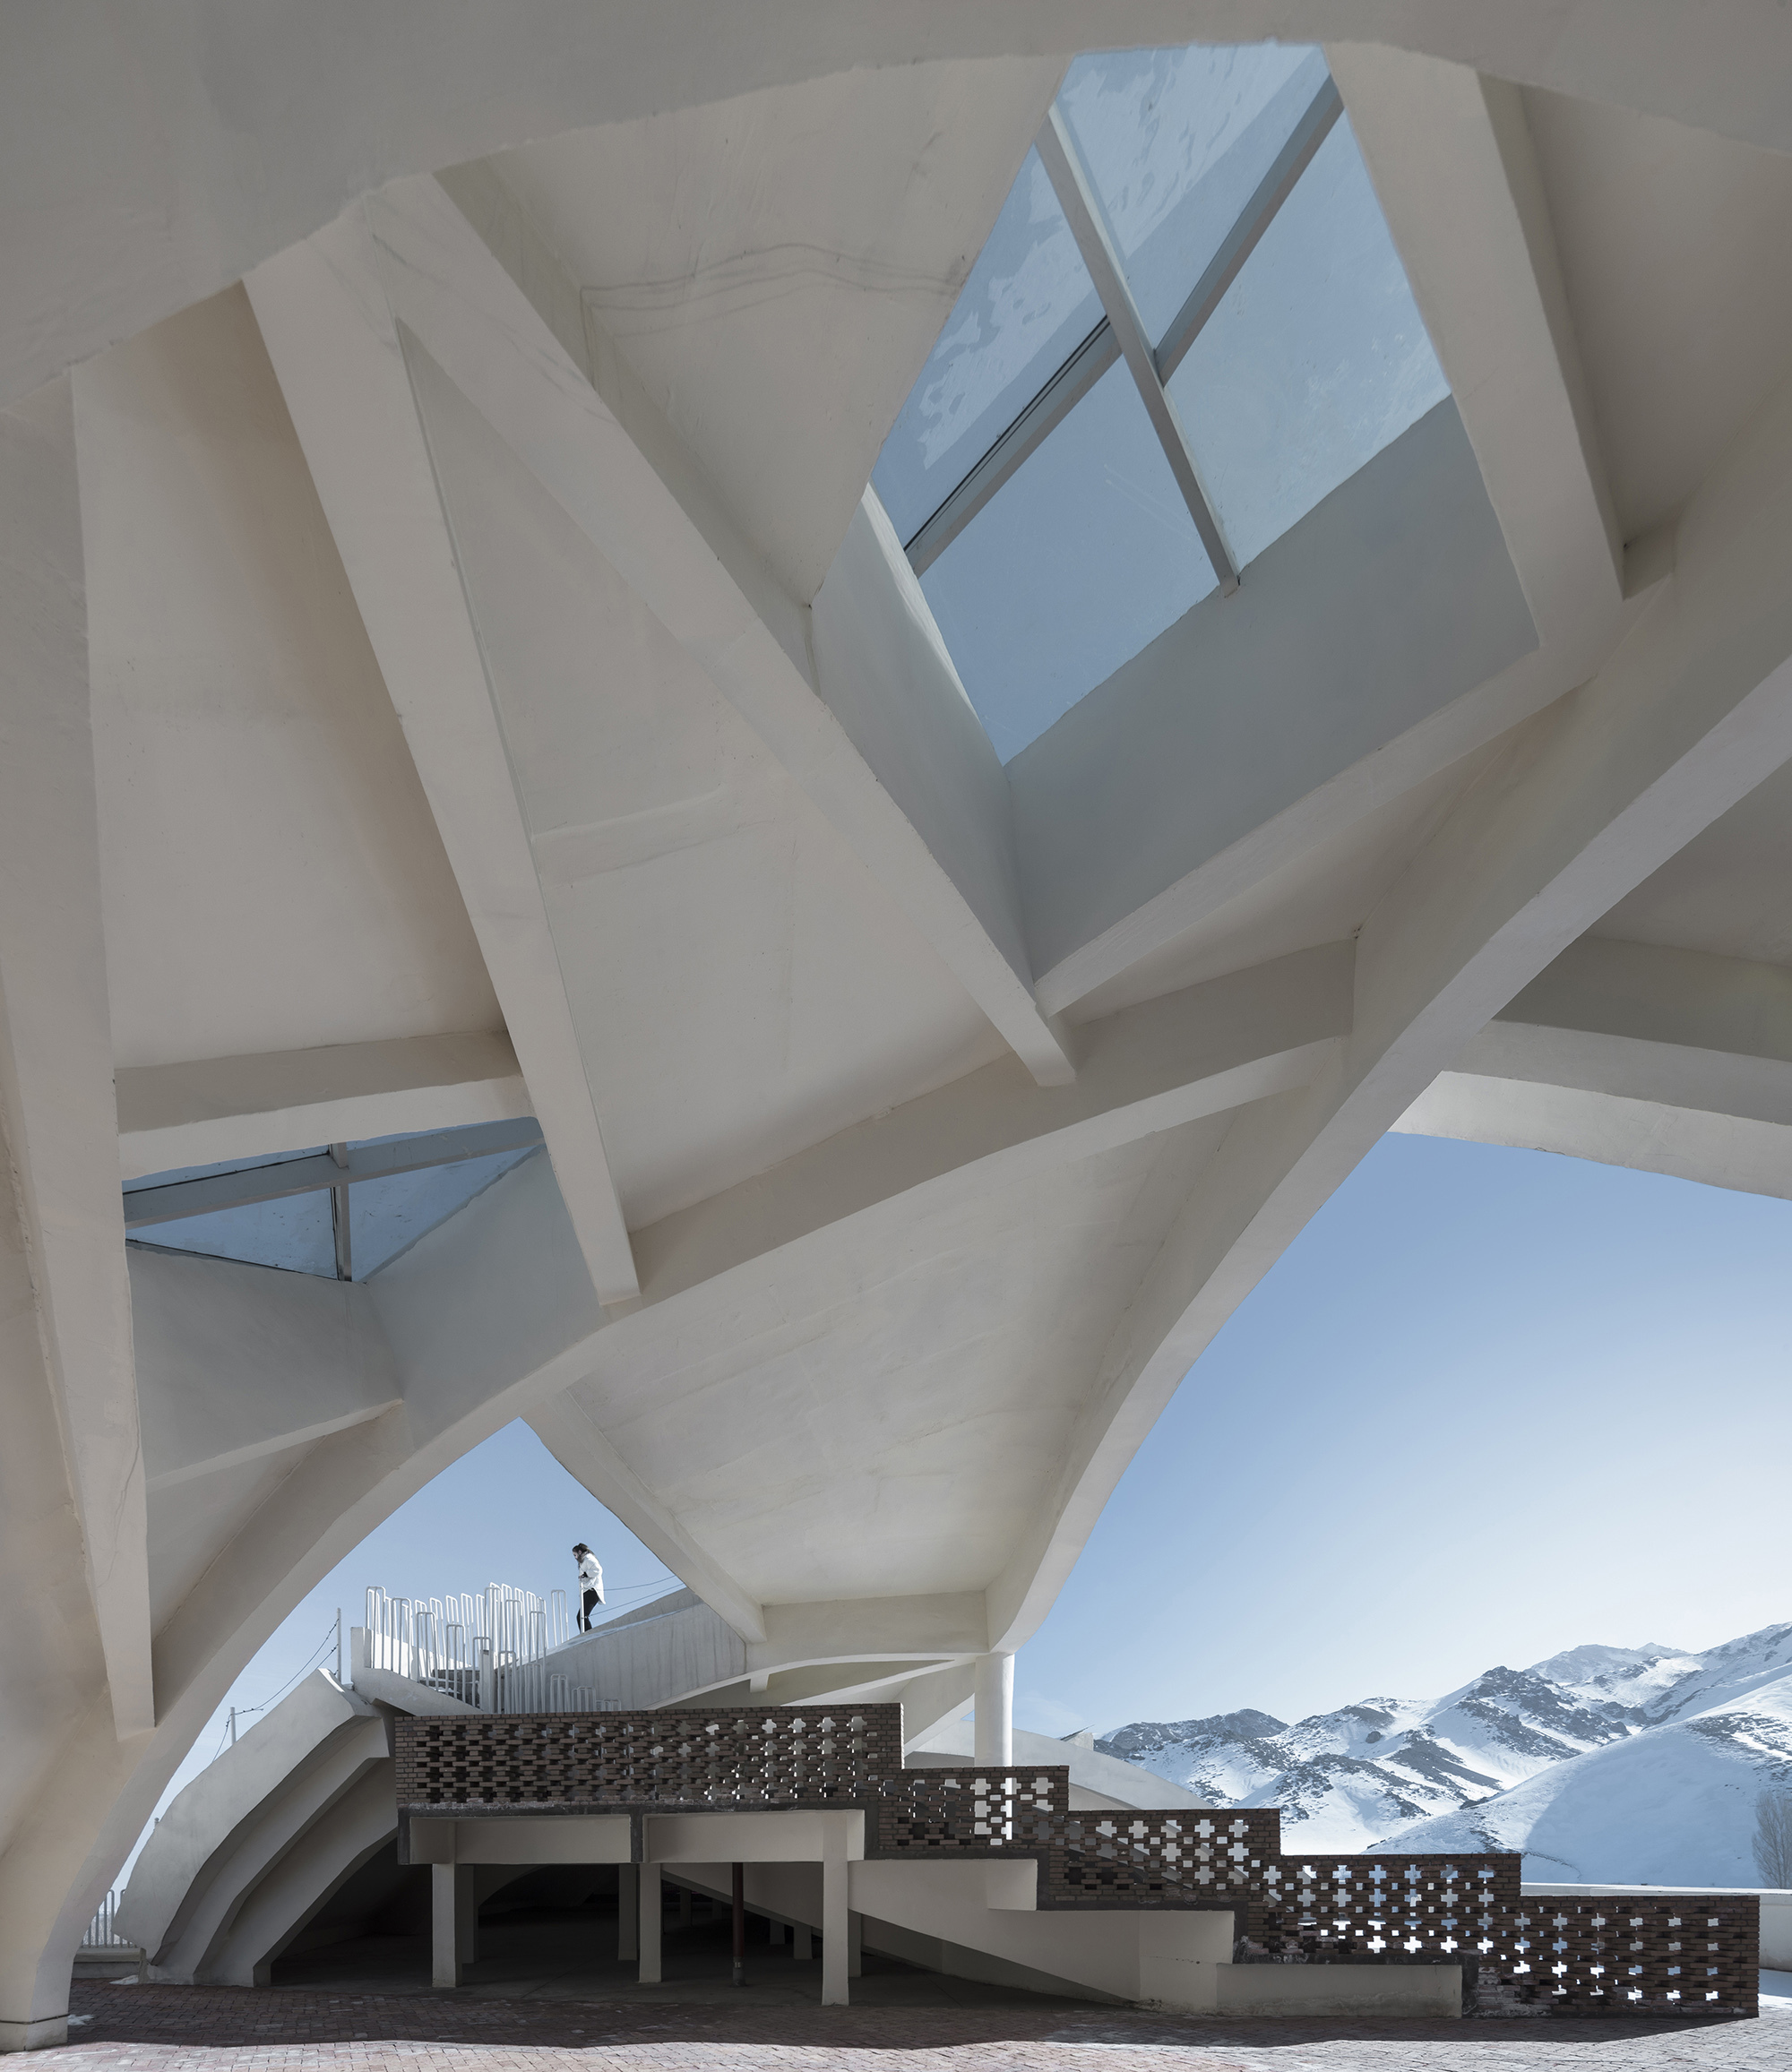 DongZhuang Museum of Western Regions / Xinjiang Wind Architectural Design & Research Institute